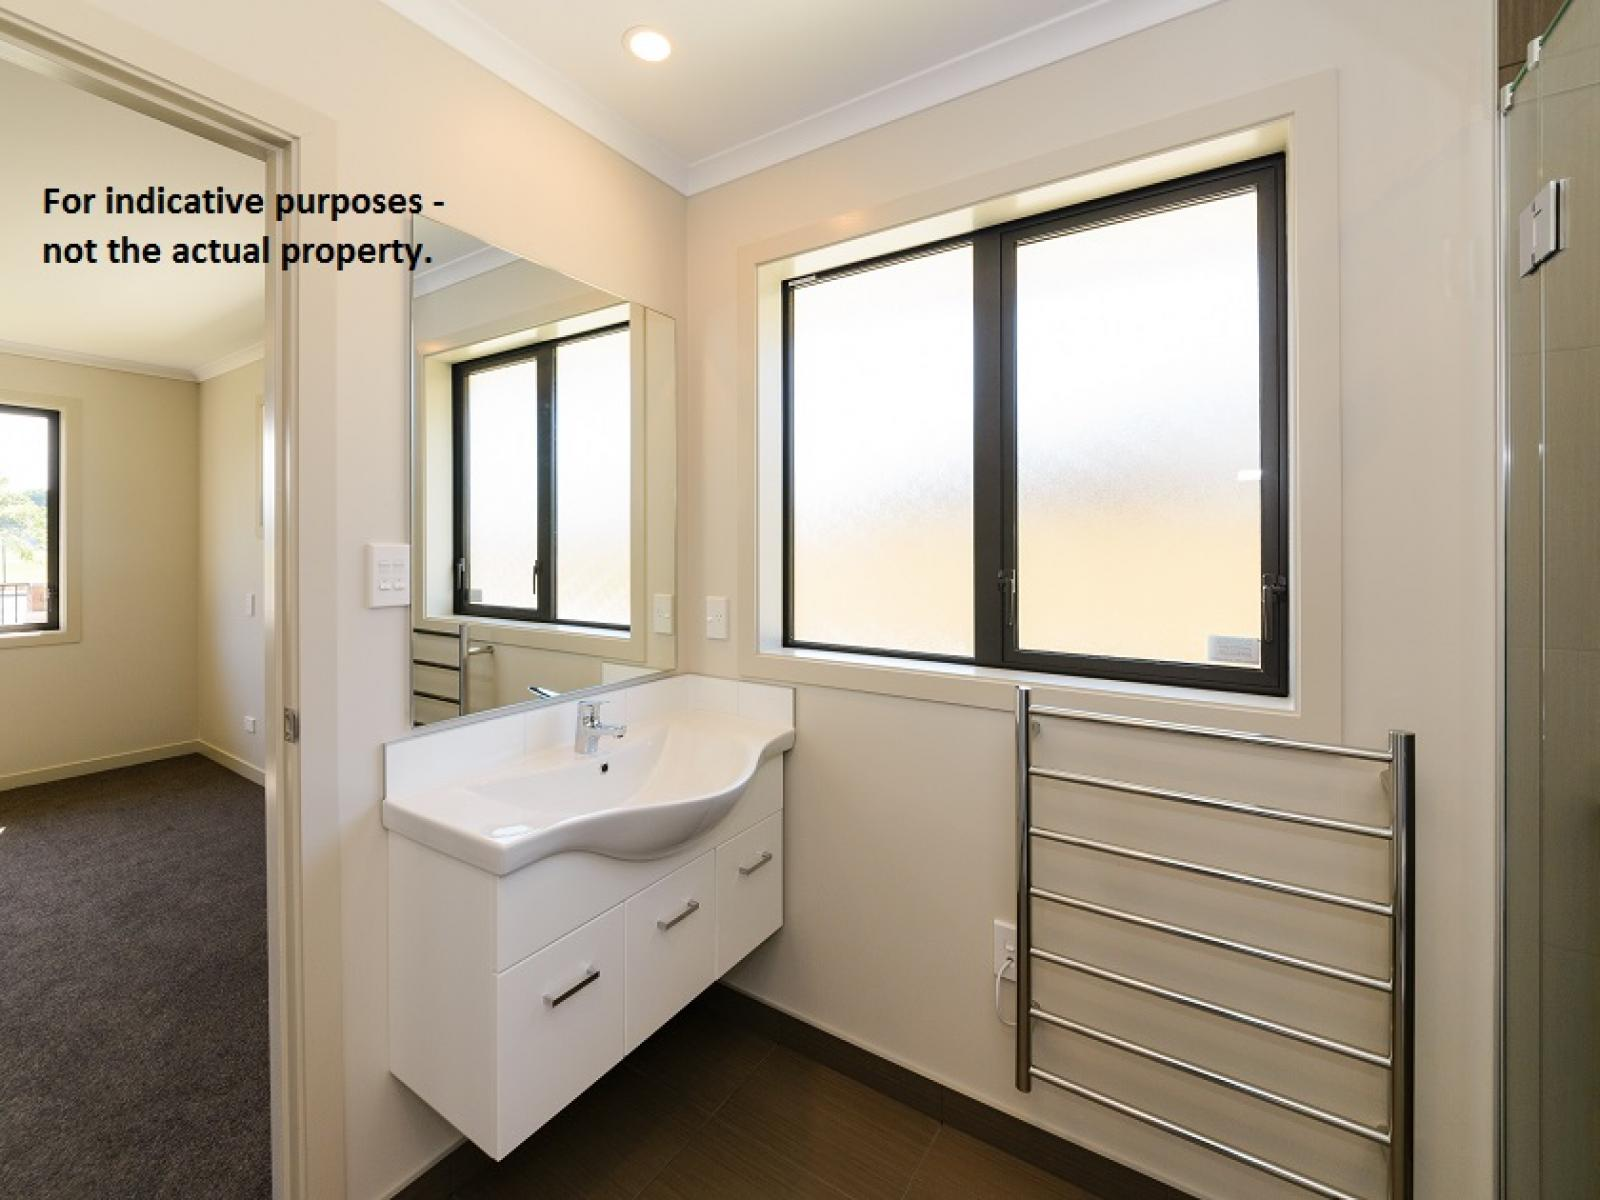 Lot 1,, 1-11 Arena Court, Central